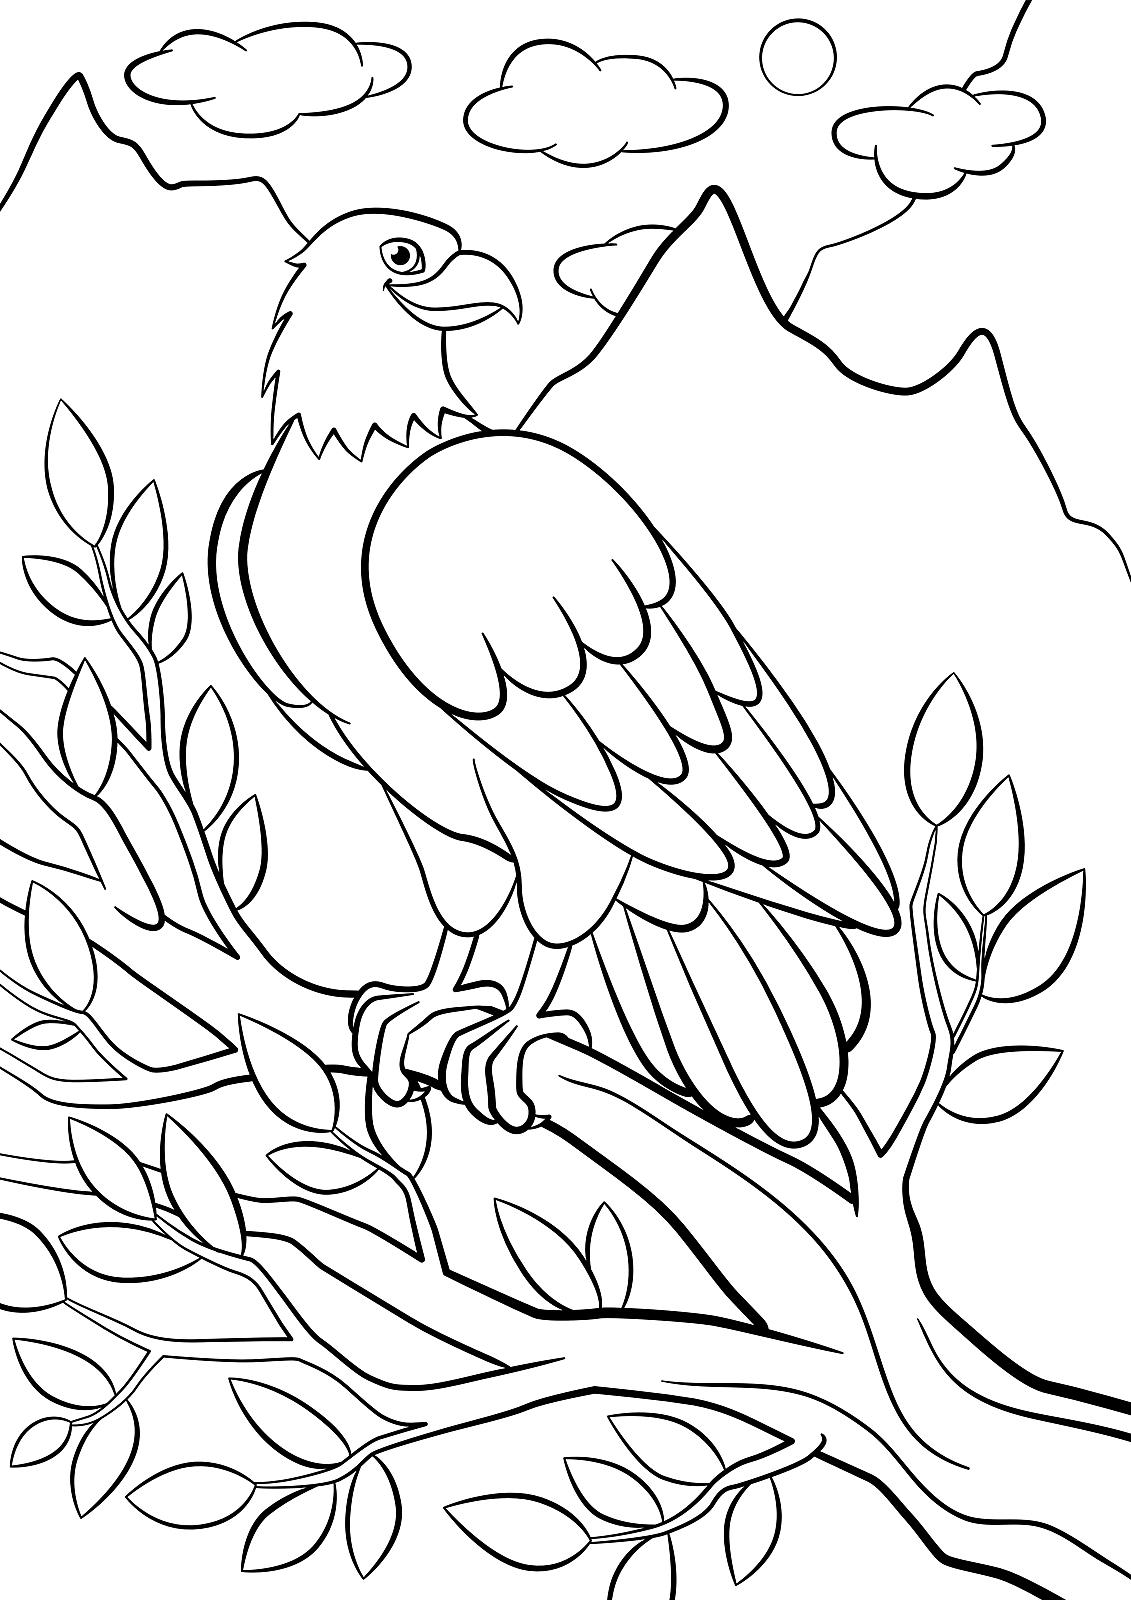 Birds Coloring Pages for Kids - Itsy Bitsy Fun | 1600x1131